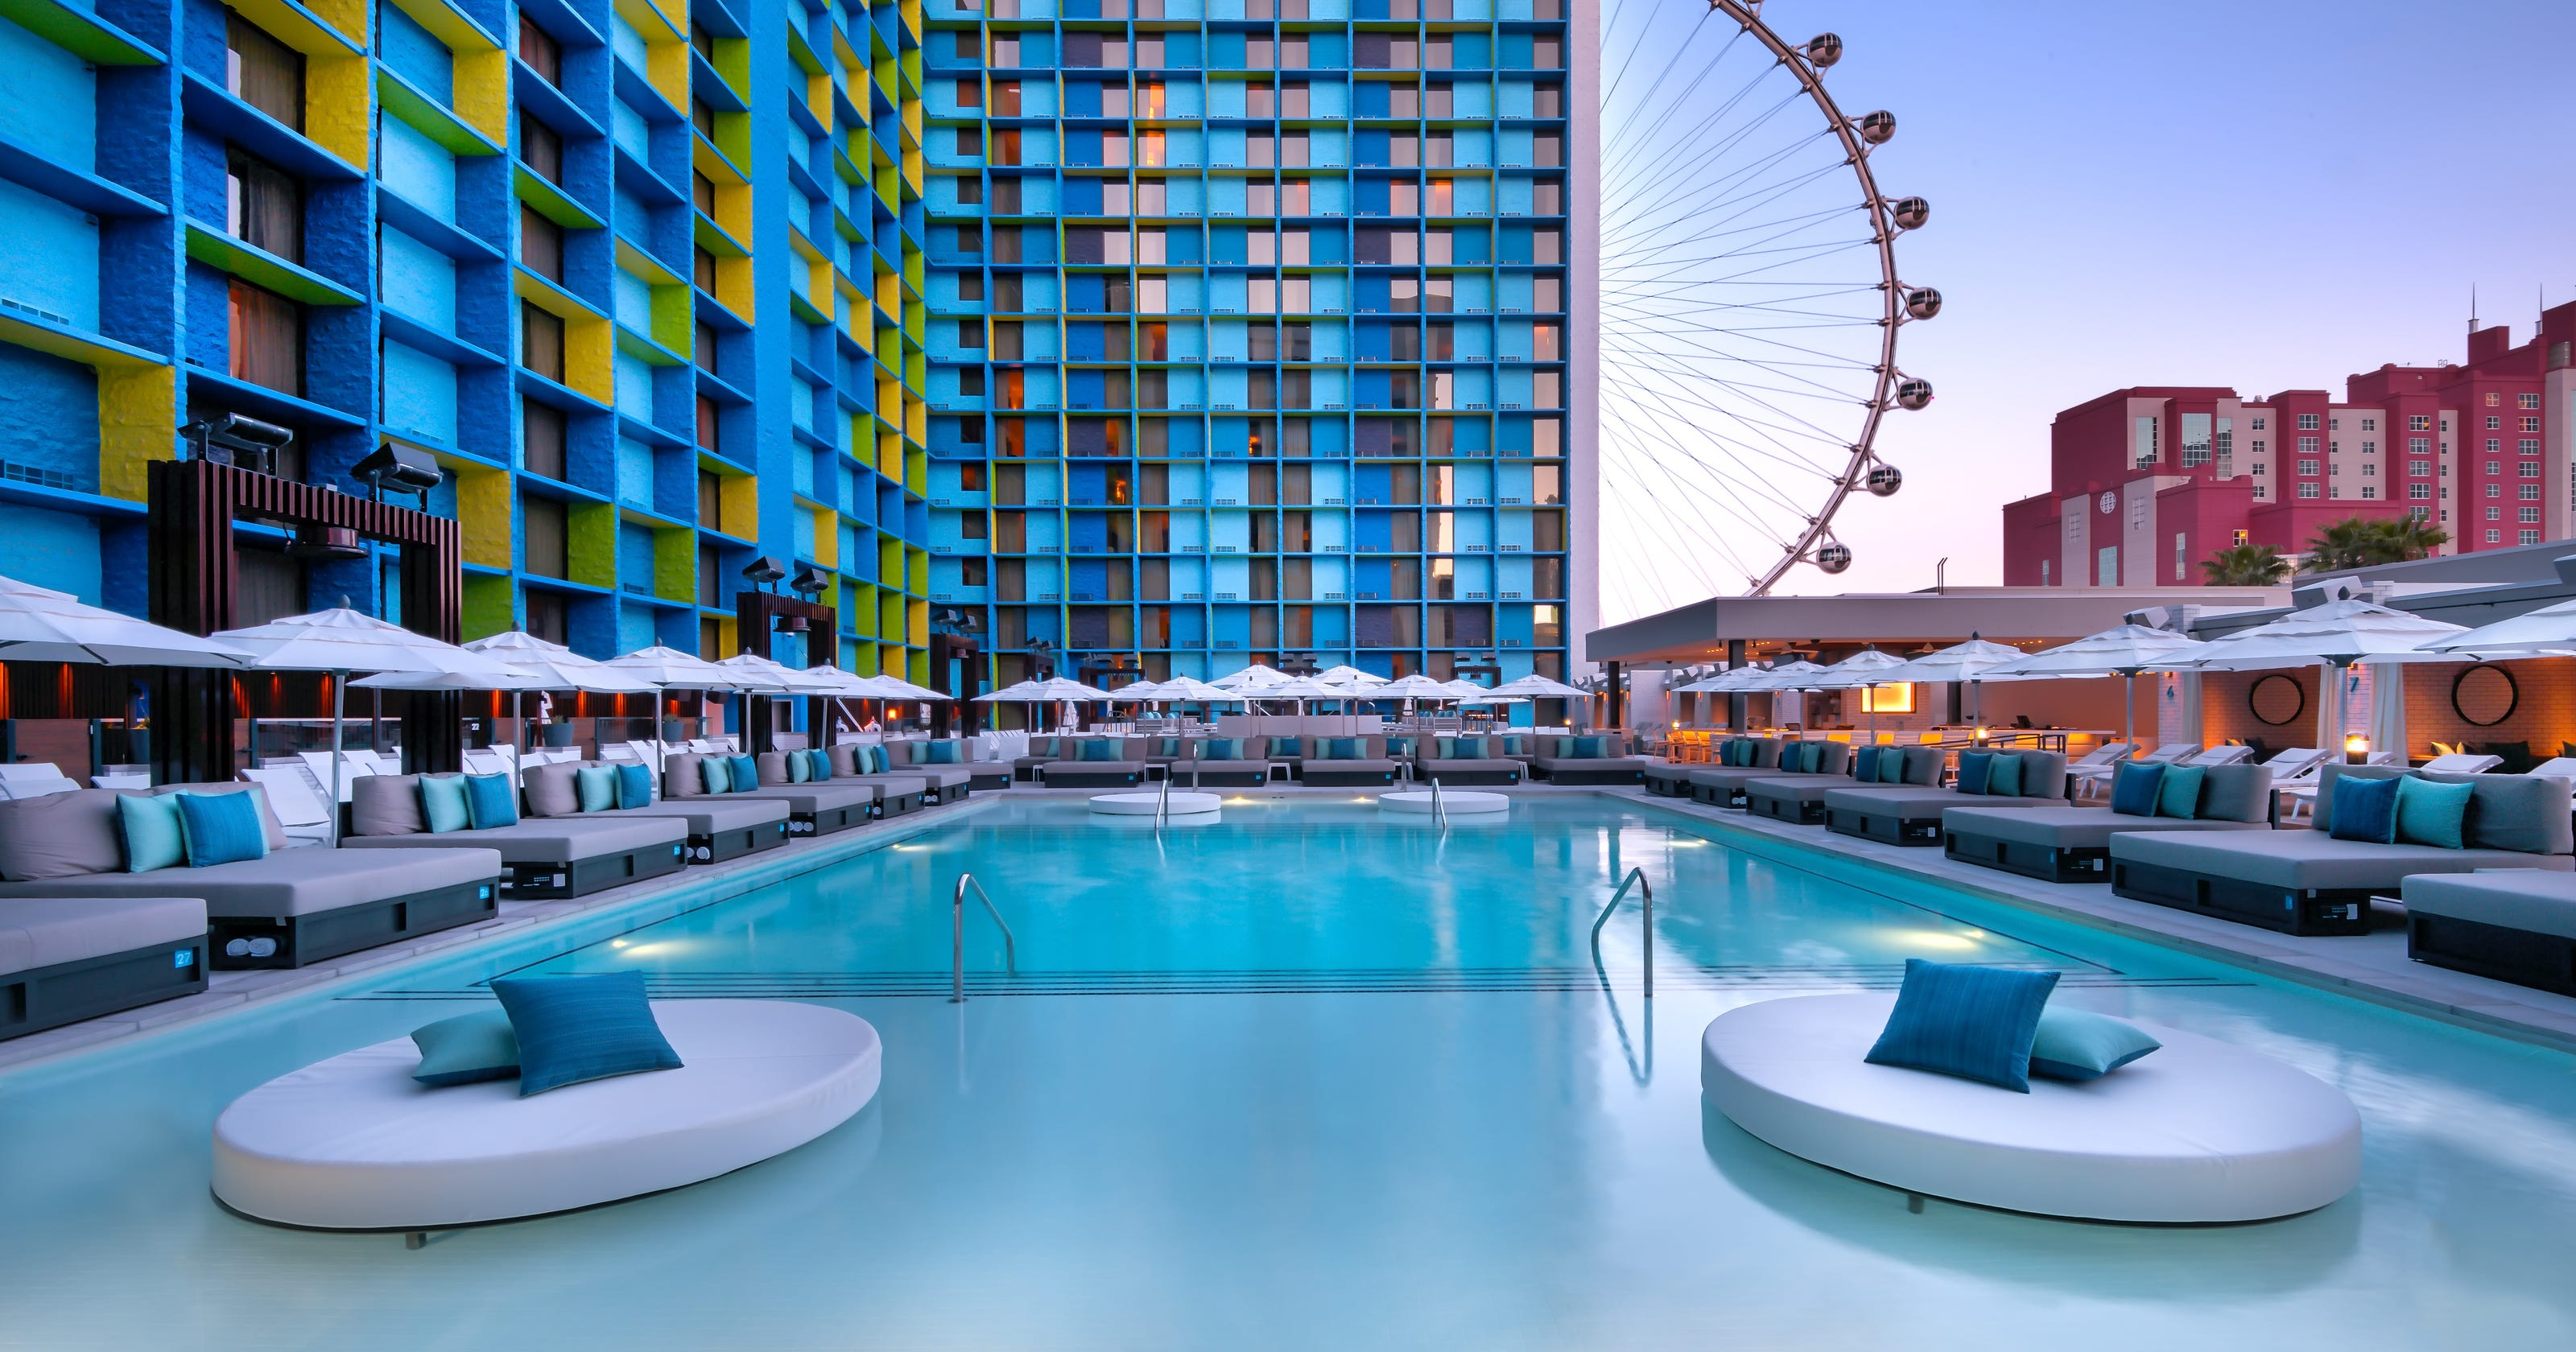 Best Hotel In Las Vegas For Families